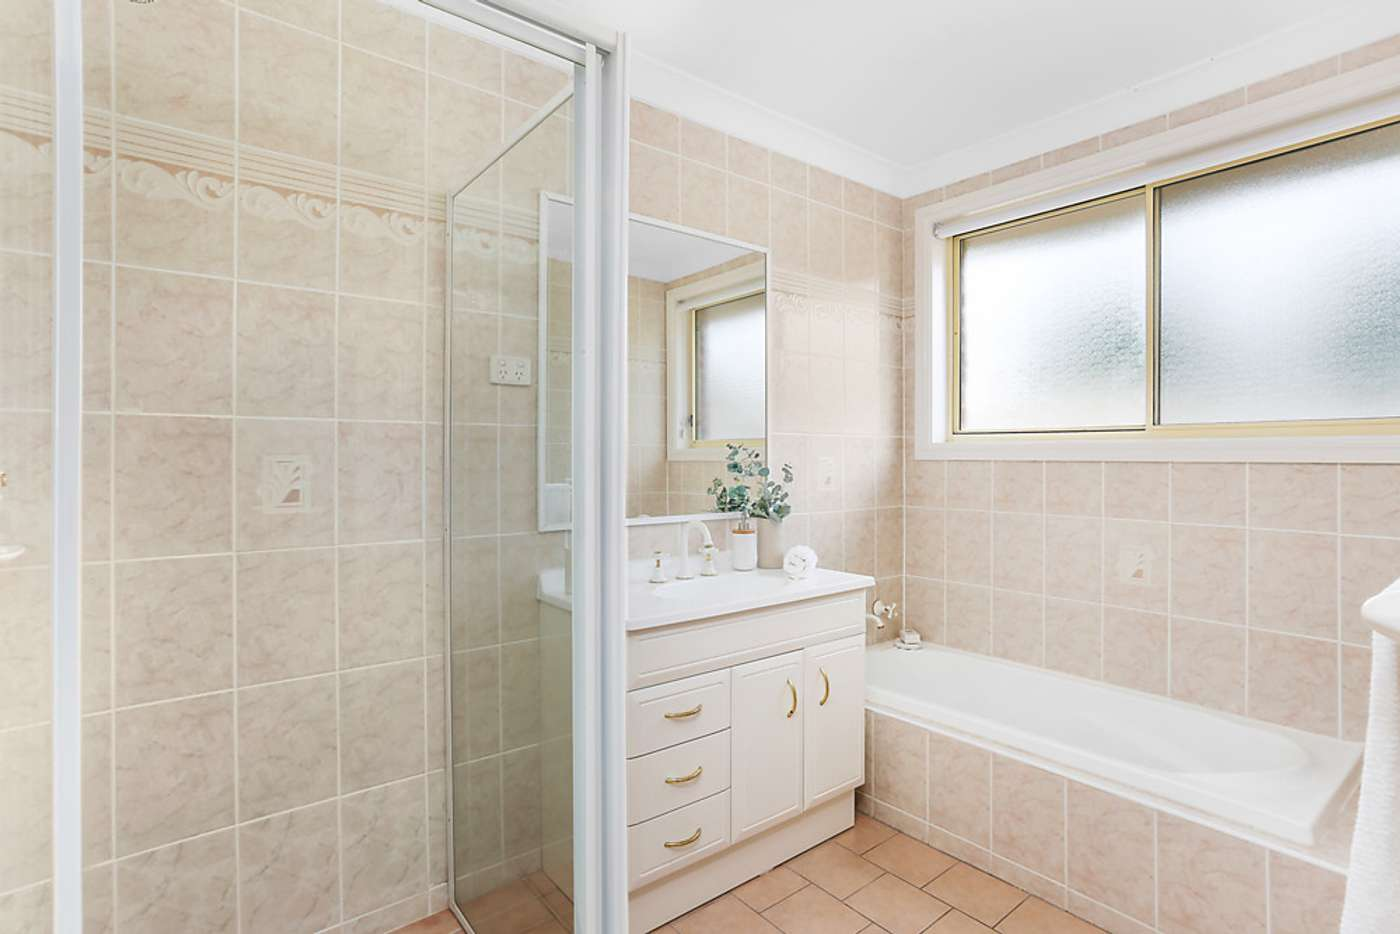 Sixth view of Homely villa listing, 1/17 William Street, Keiraville NSW 2500